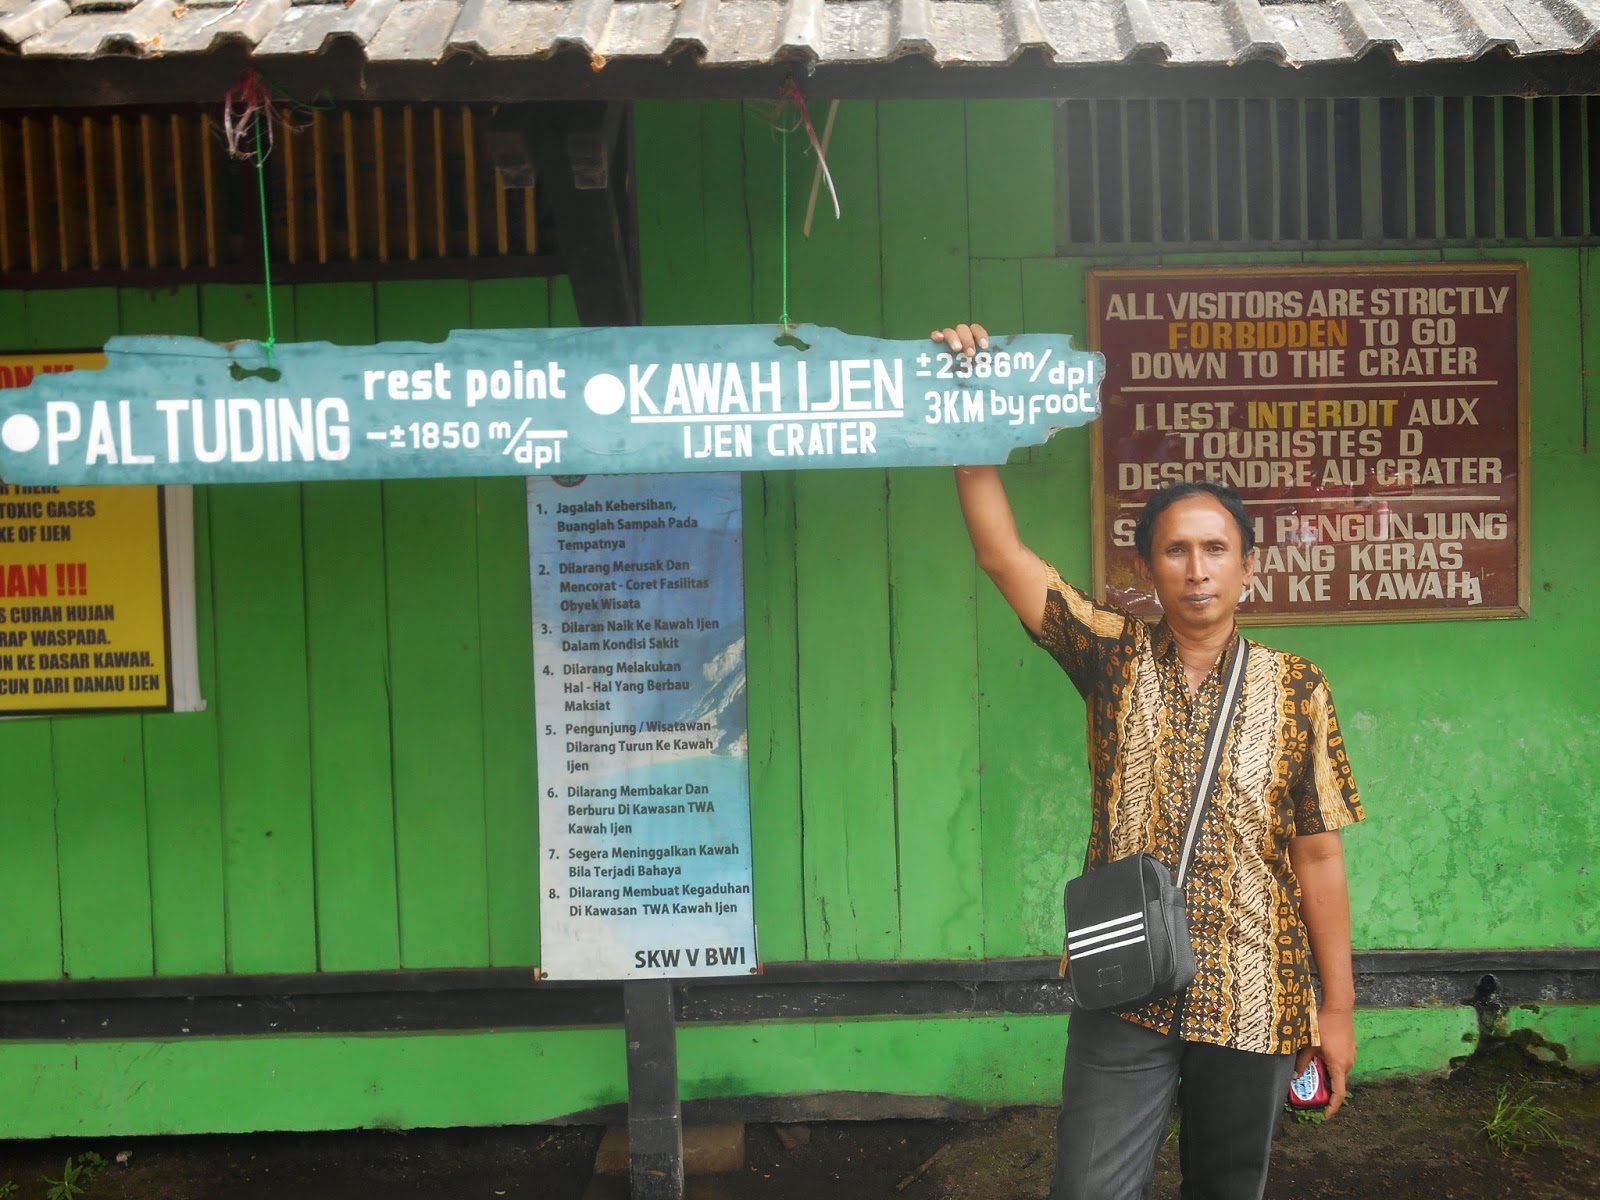 paltuding post for start hiking to Ijen crater